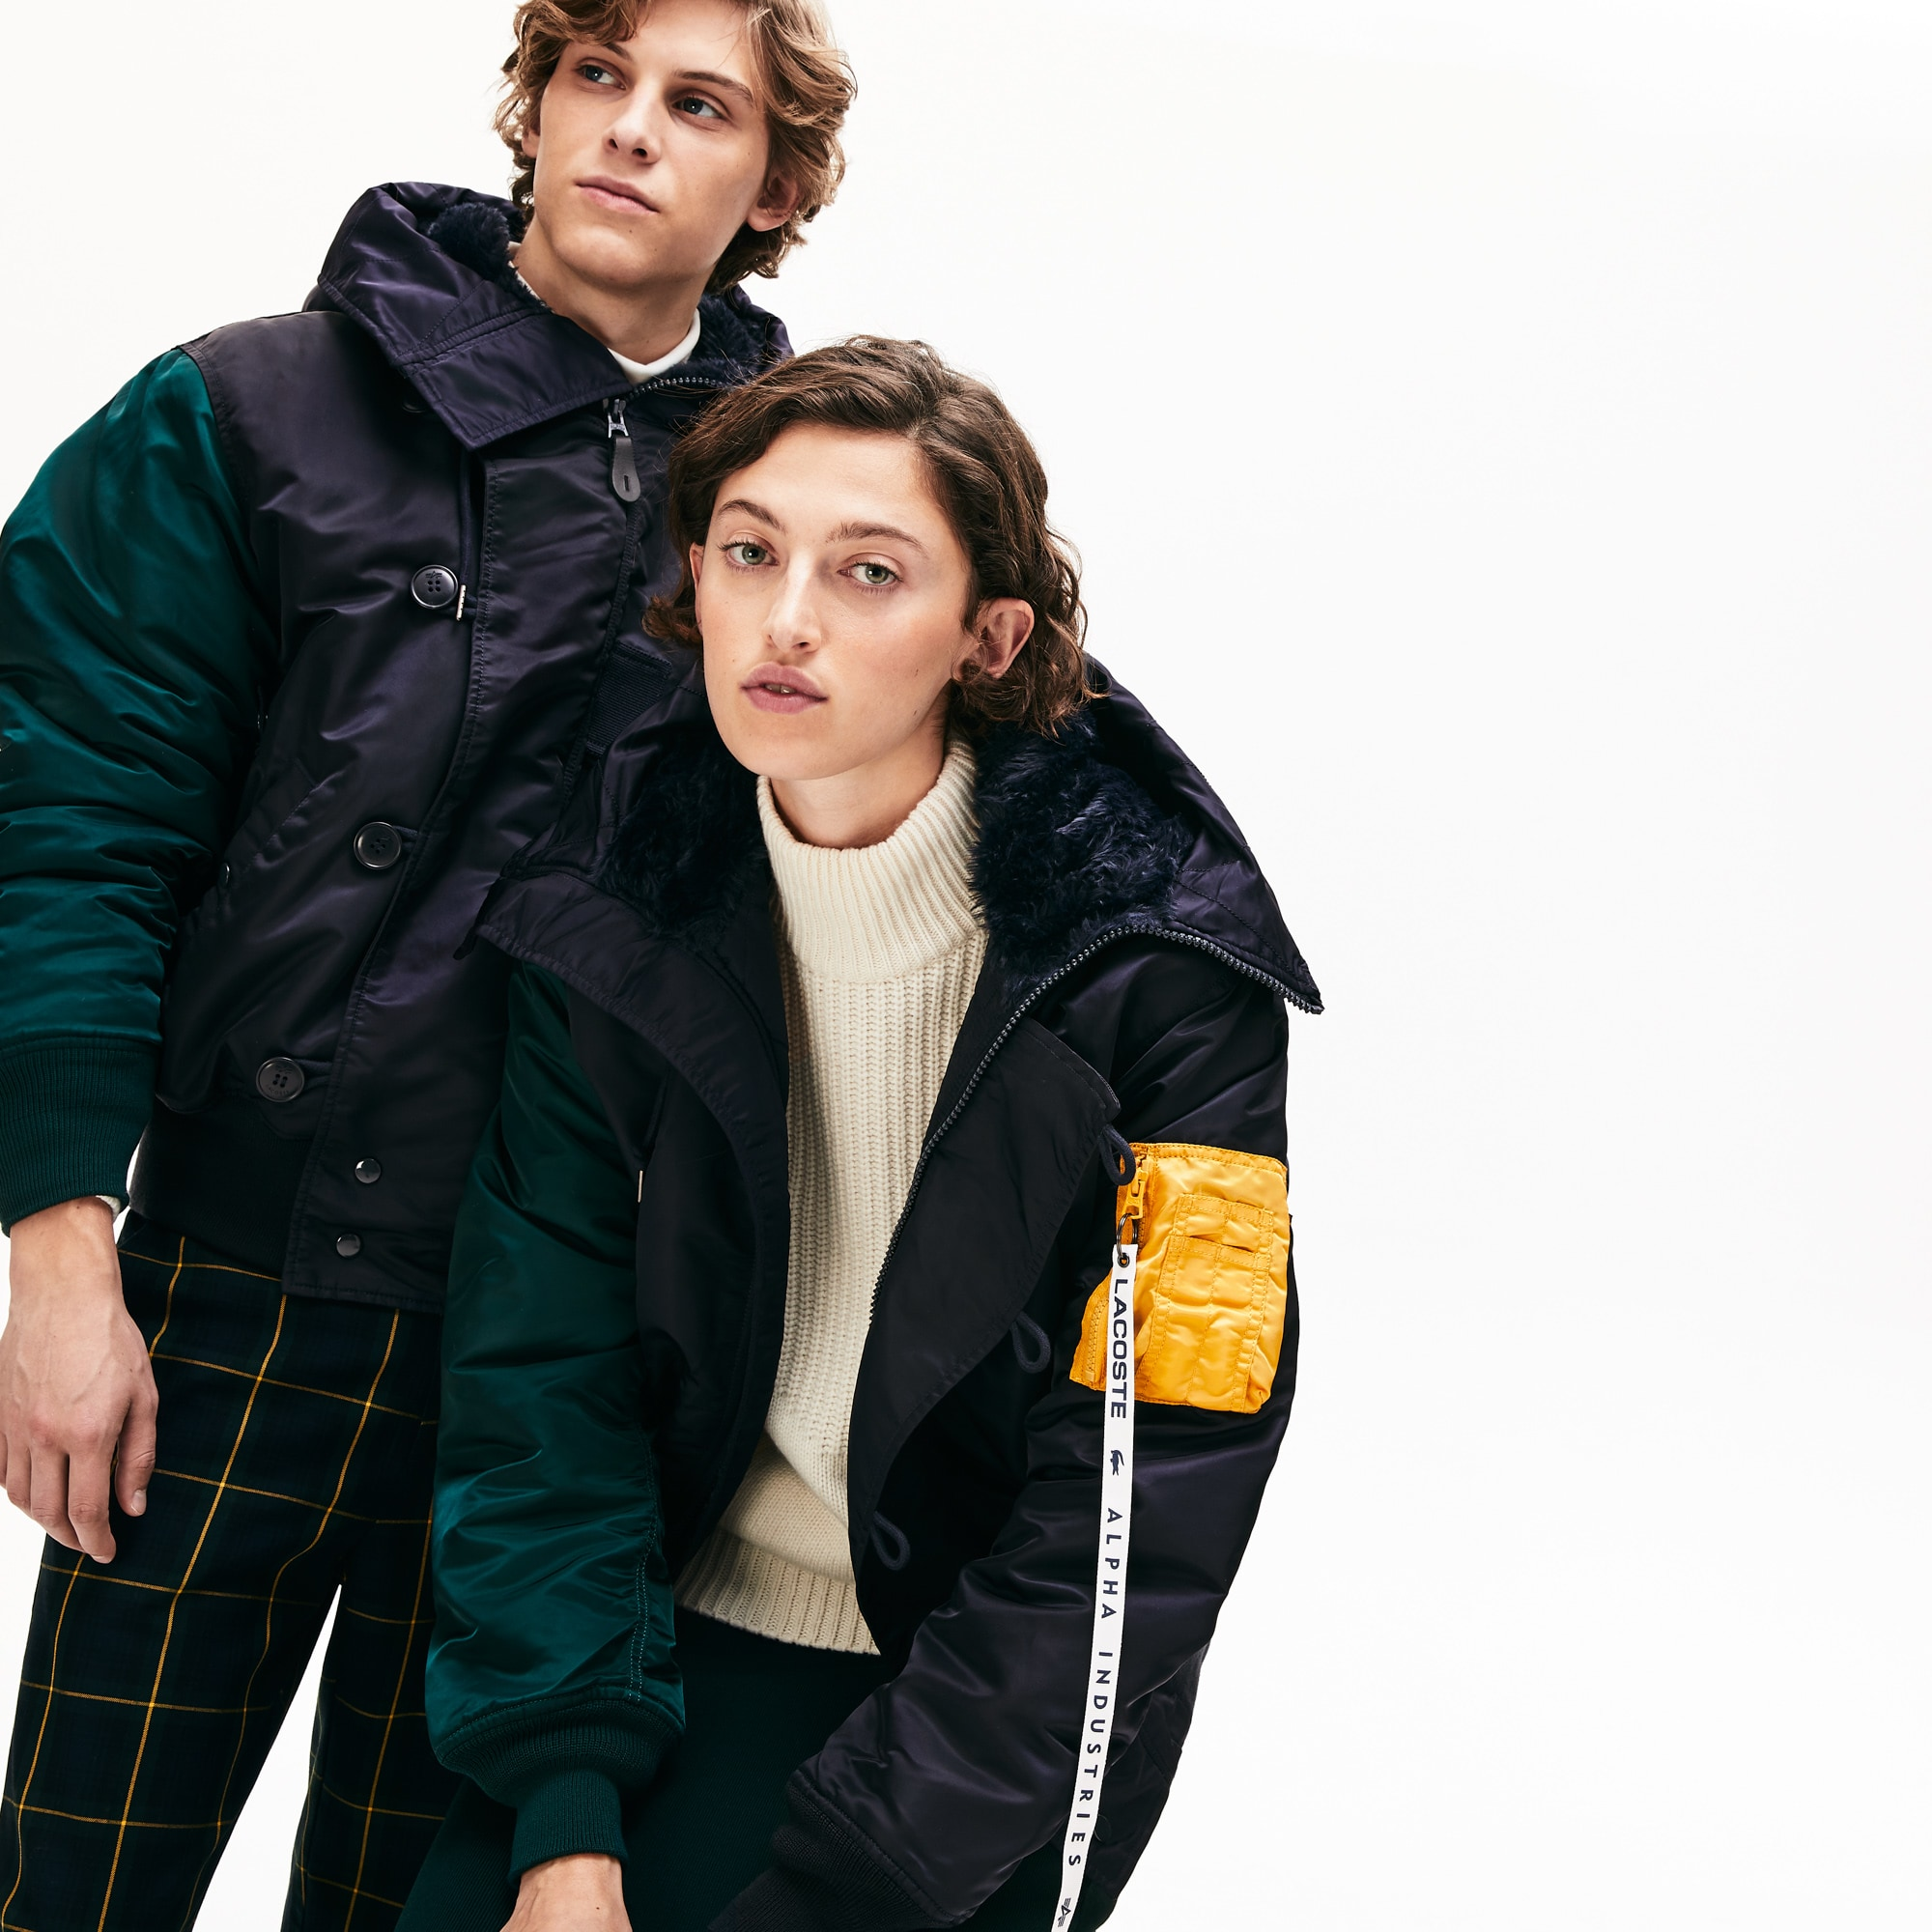 [Unisex] Lacoste x Alpha Industries 컬러블럭 항공잠바